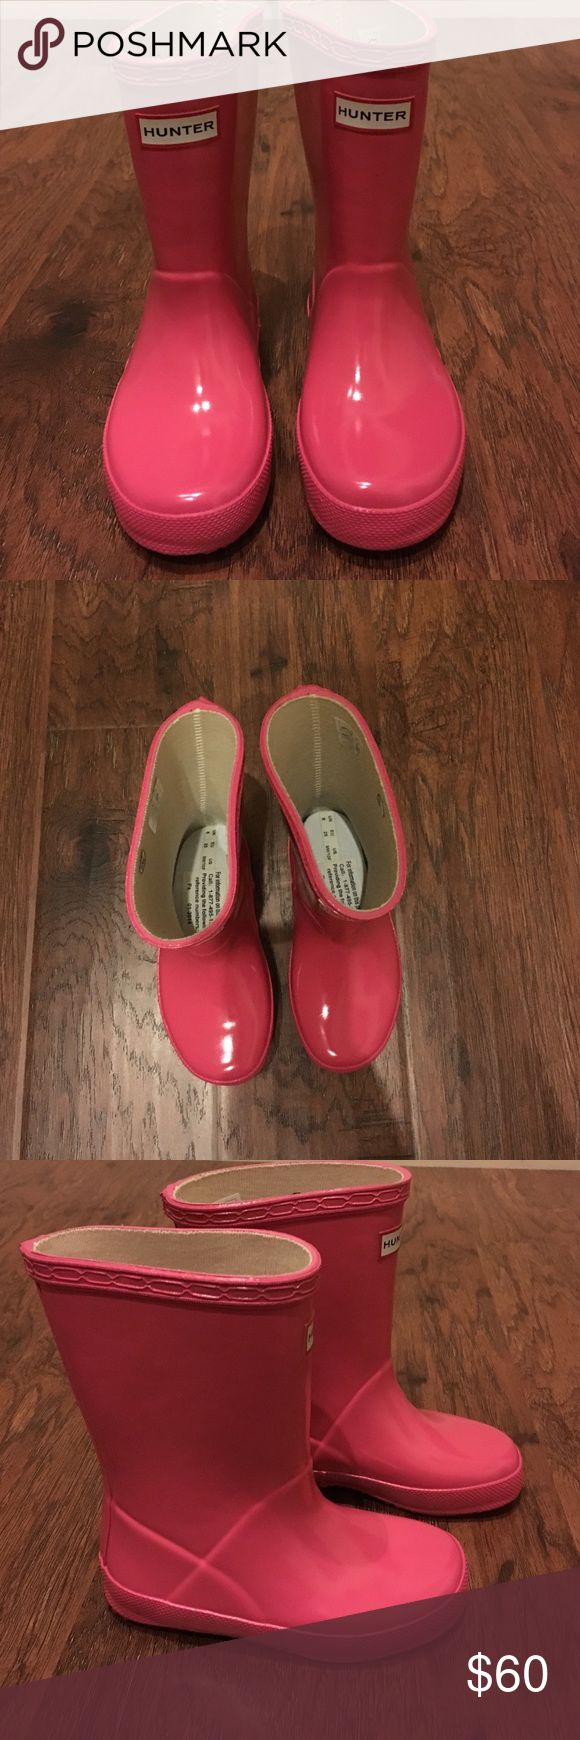 Brand New Hunter Kids Rain Boots Pink Hunter Rain Boots. Brand New. Never Worn. No flaws and stains. Roomy. Fits Size 9-11 toddler girl shoe sizes. Hunter Boots Shoes Rain & Snow Boots